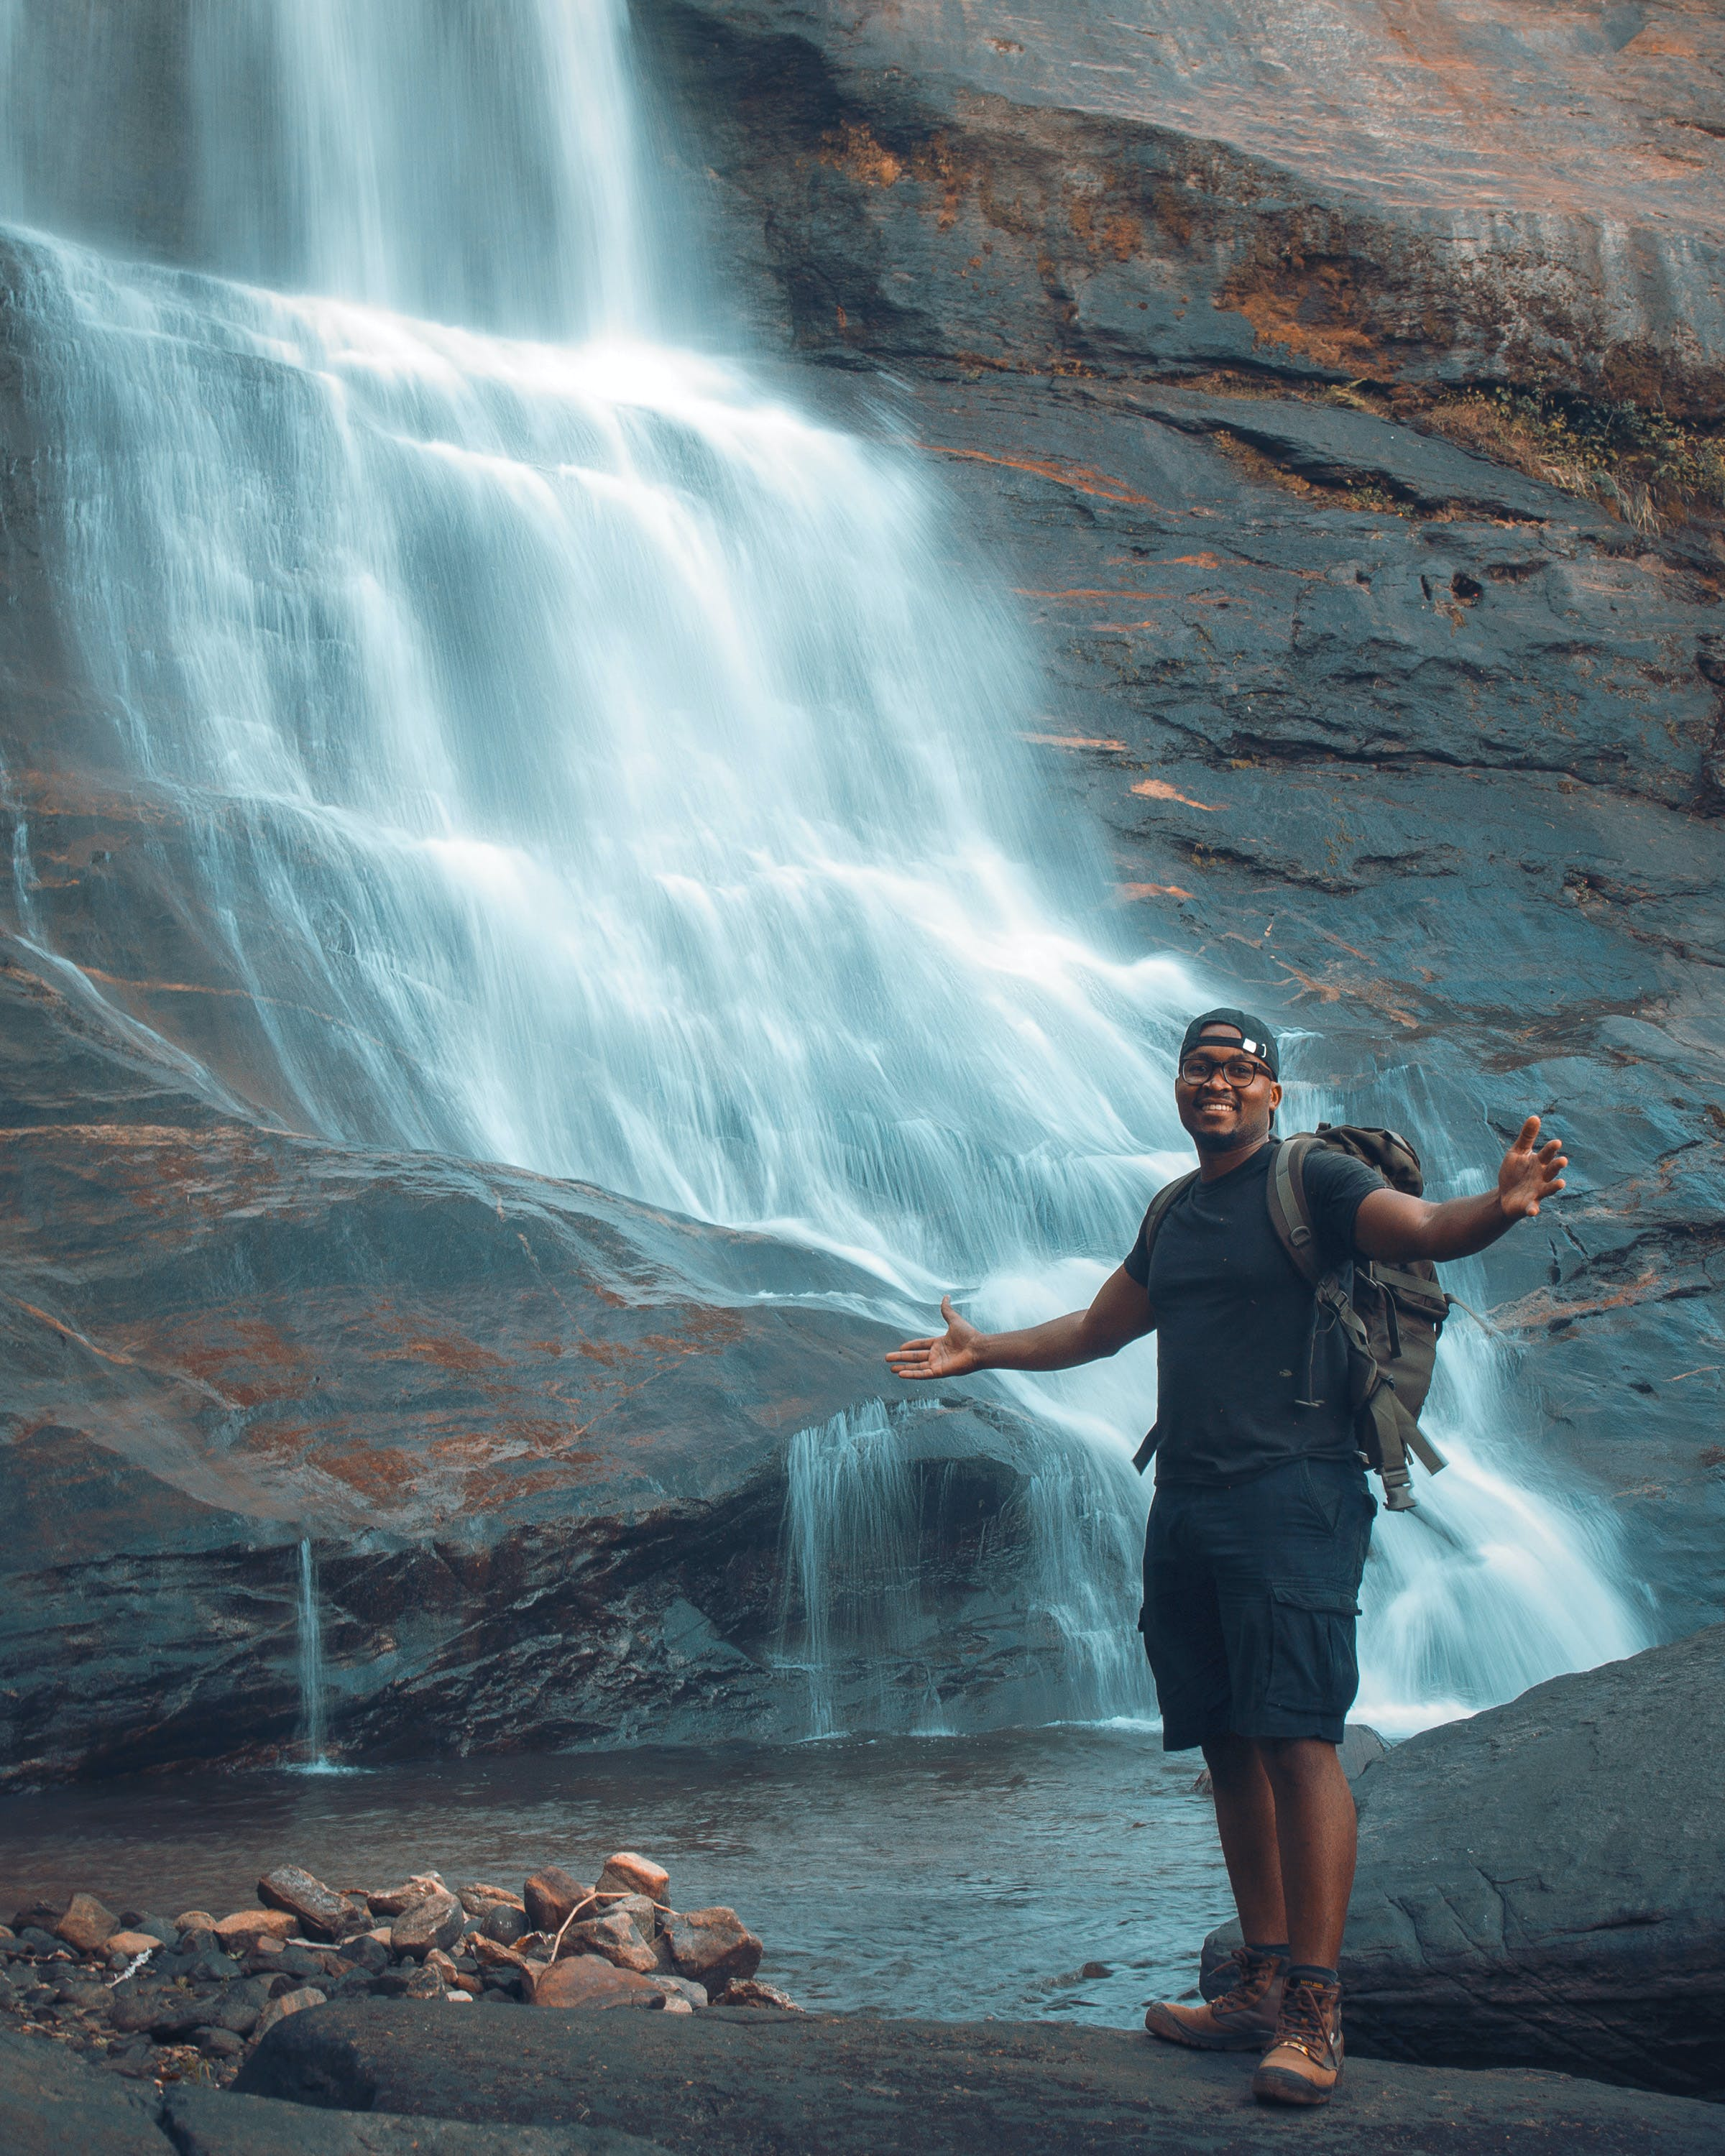 Man Standing on Rock in Front of Waterfalls